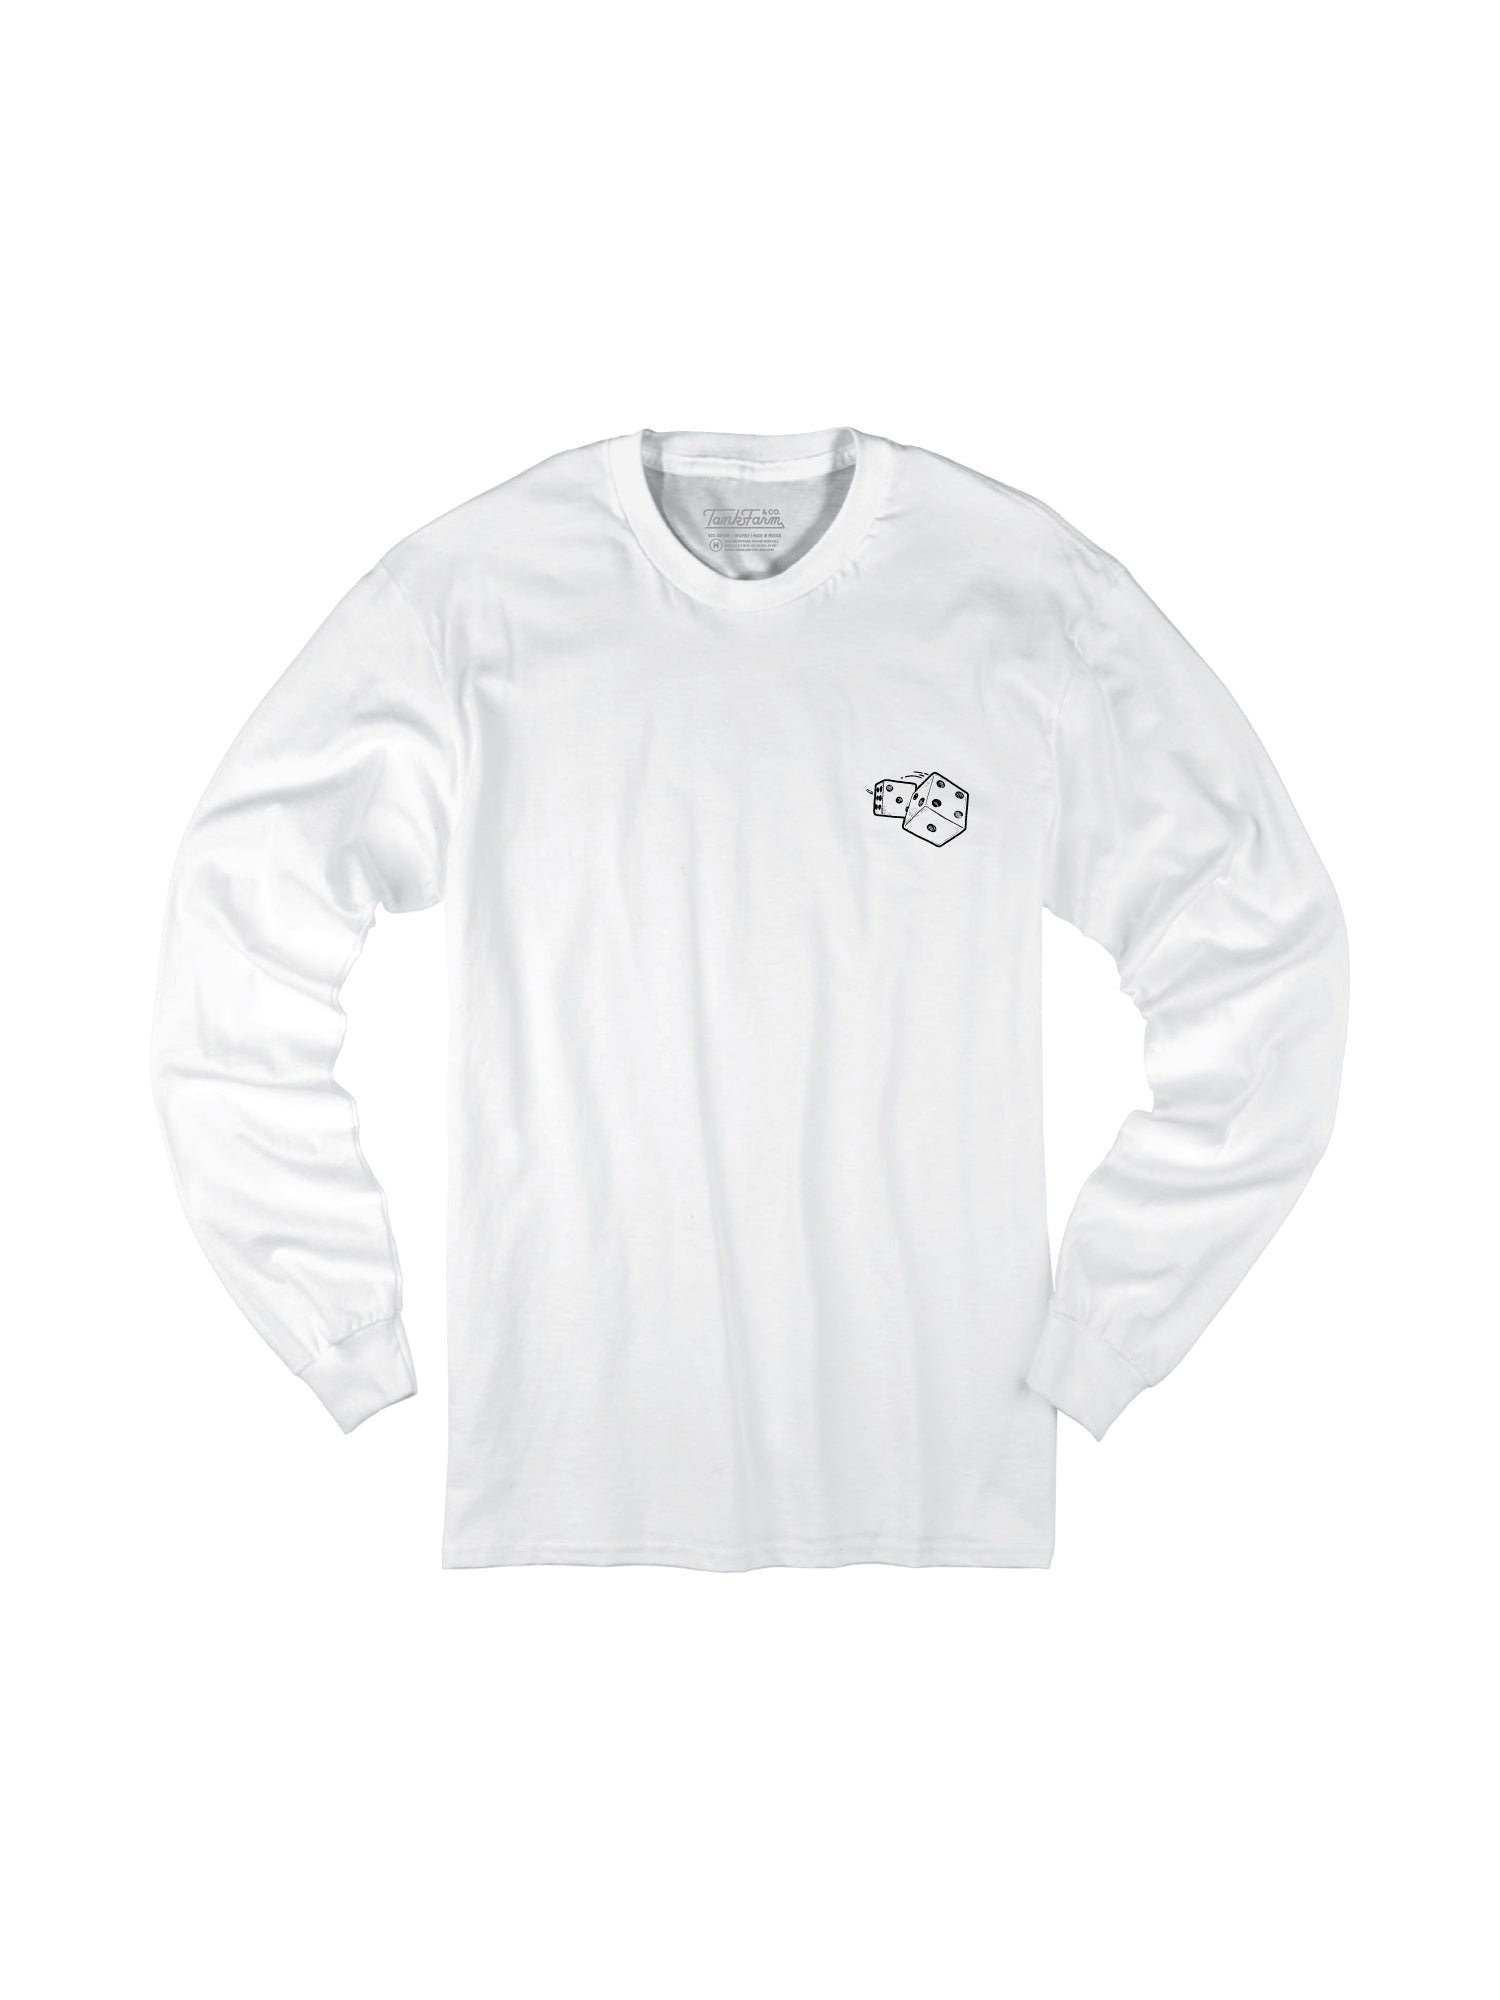 ROLL THE DICE L/S - WHITE - Tankfarm & Co.